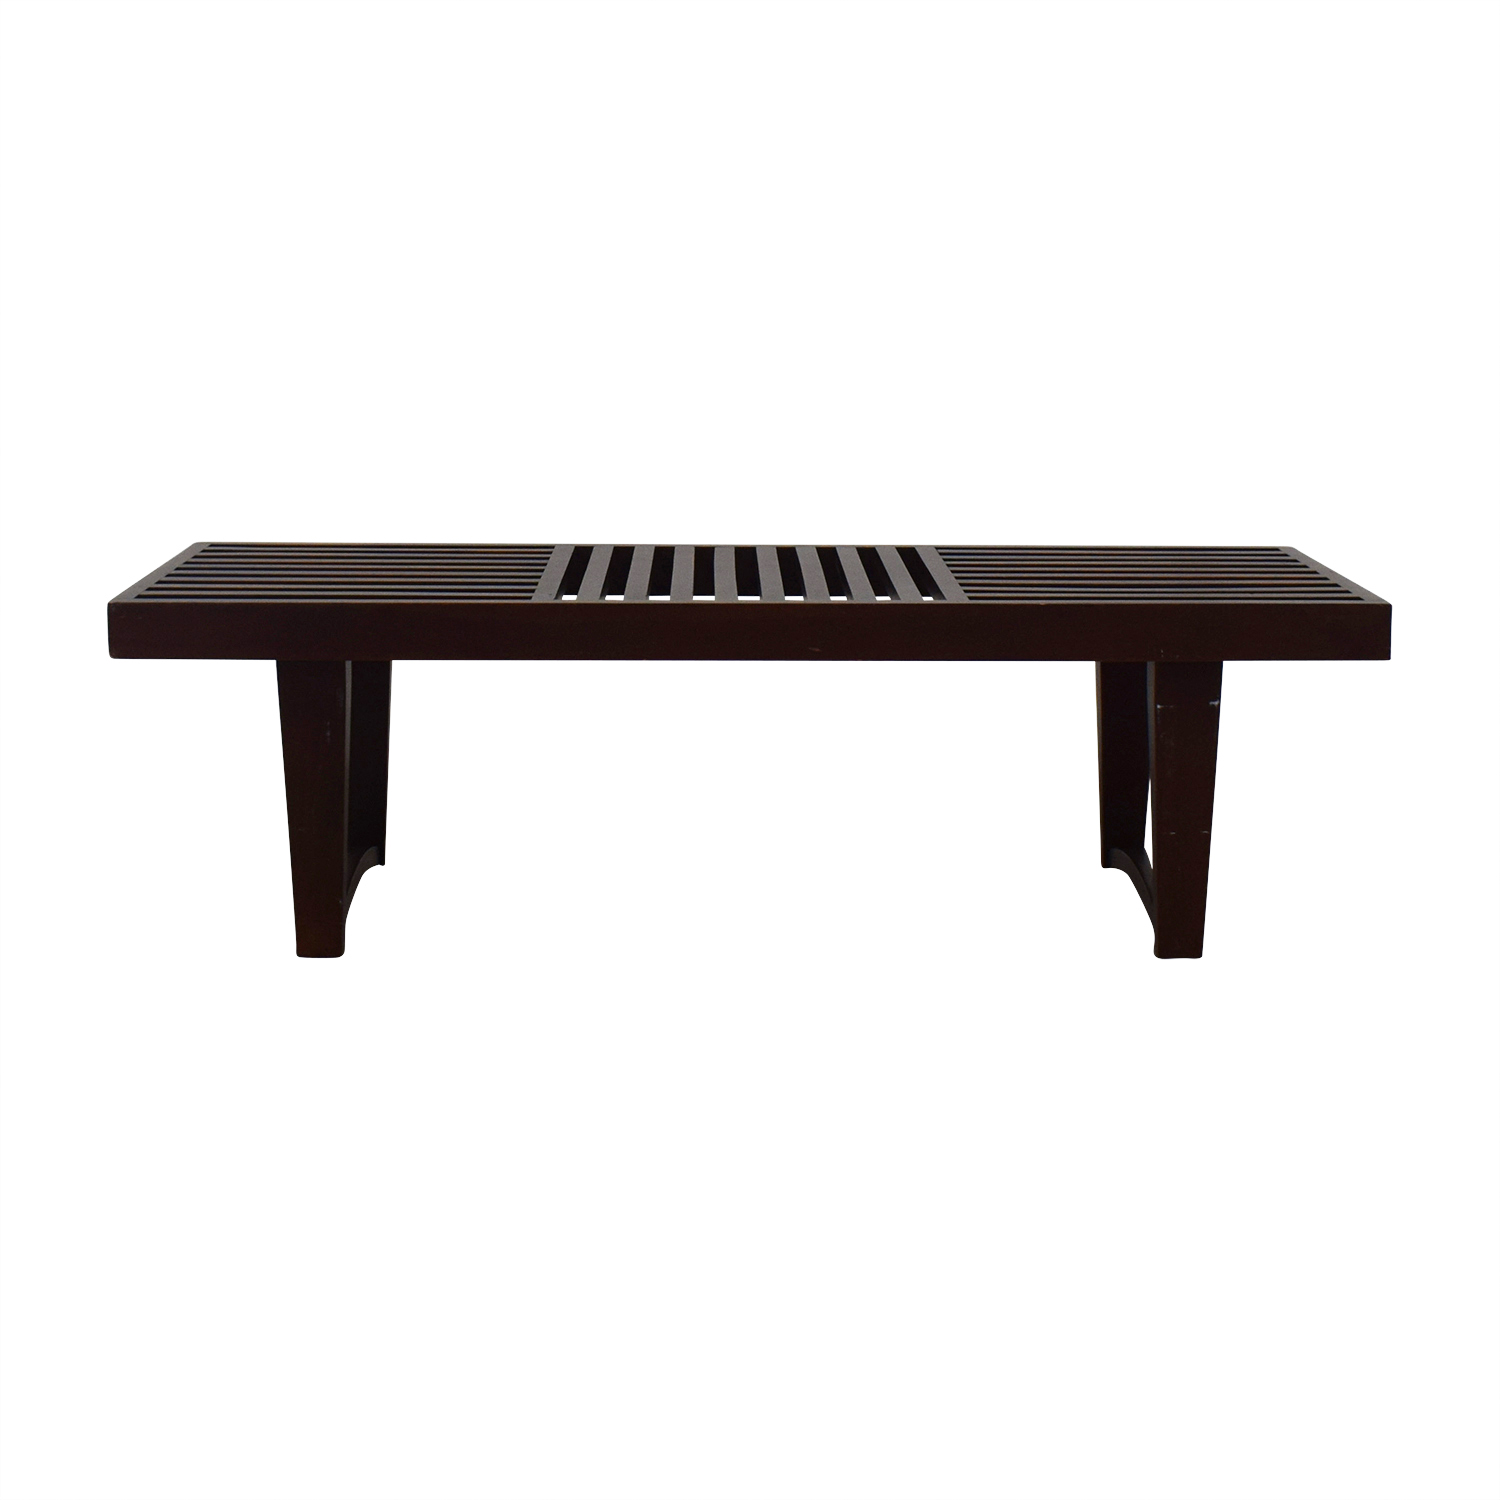 Geometric Entry Bench used